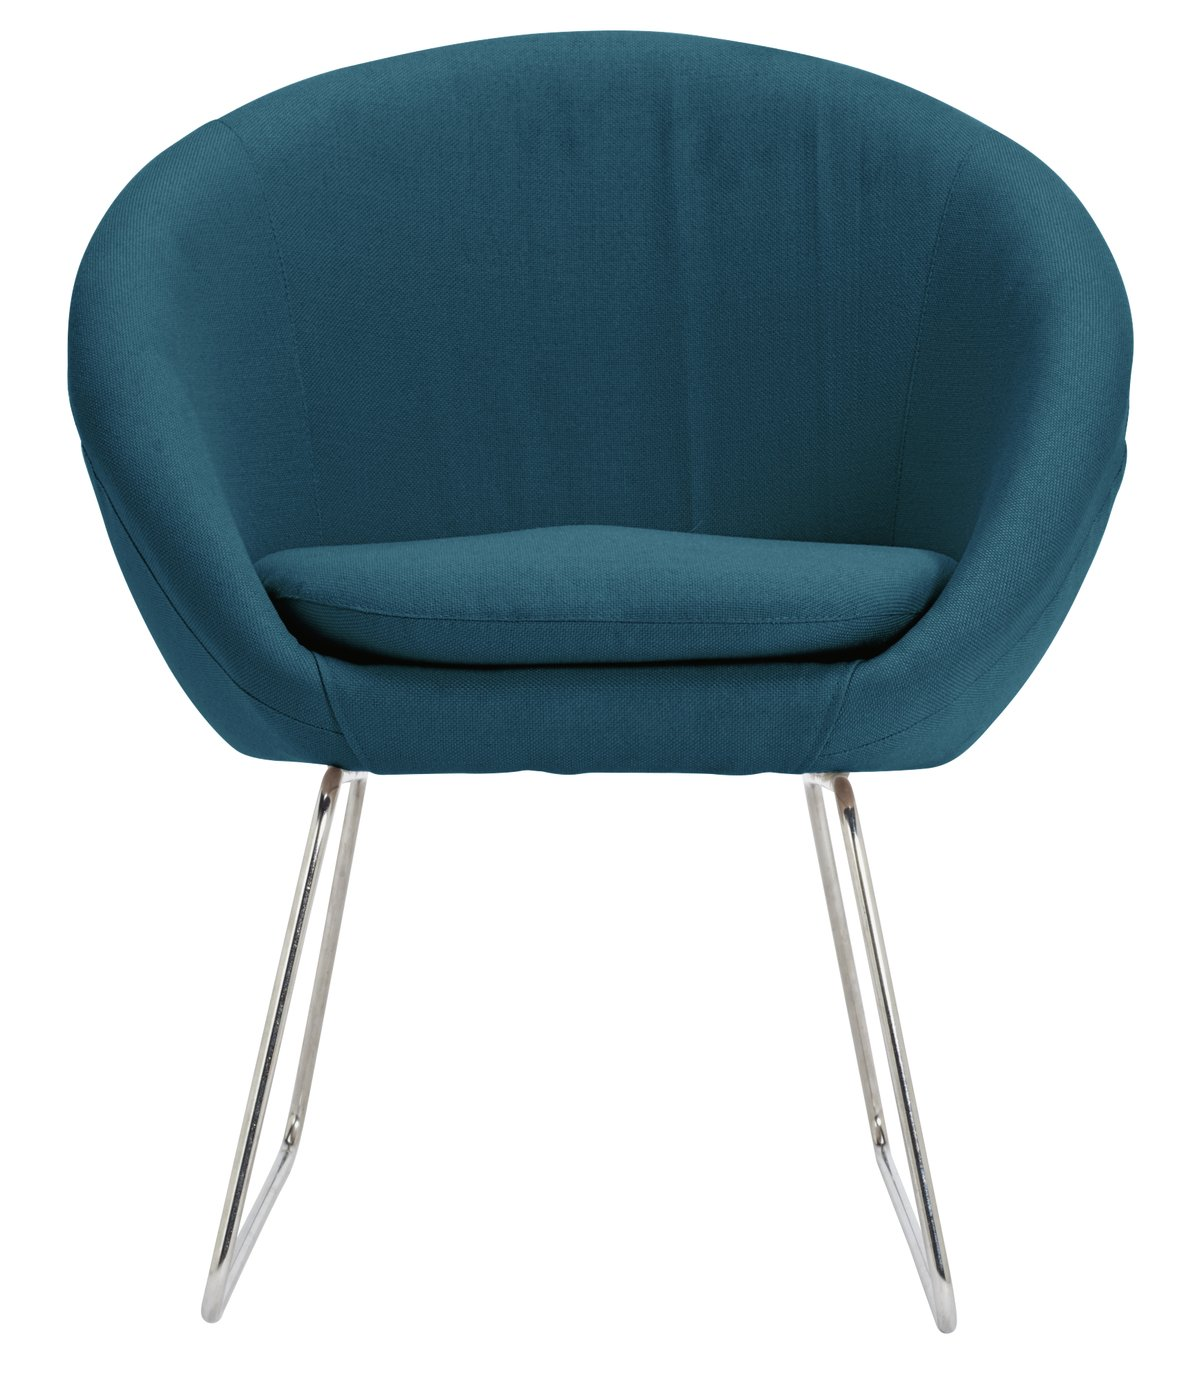 Argos Home Fabric Pod Chair - Navy